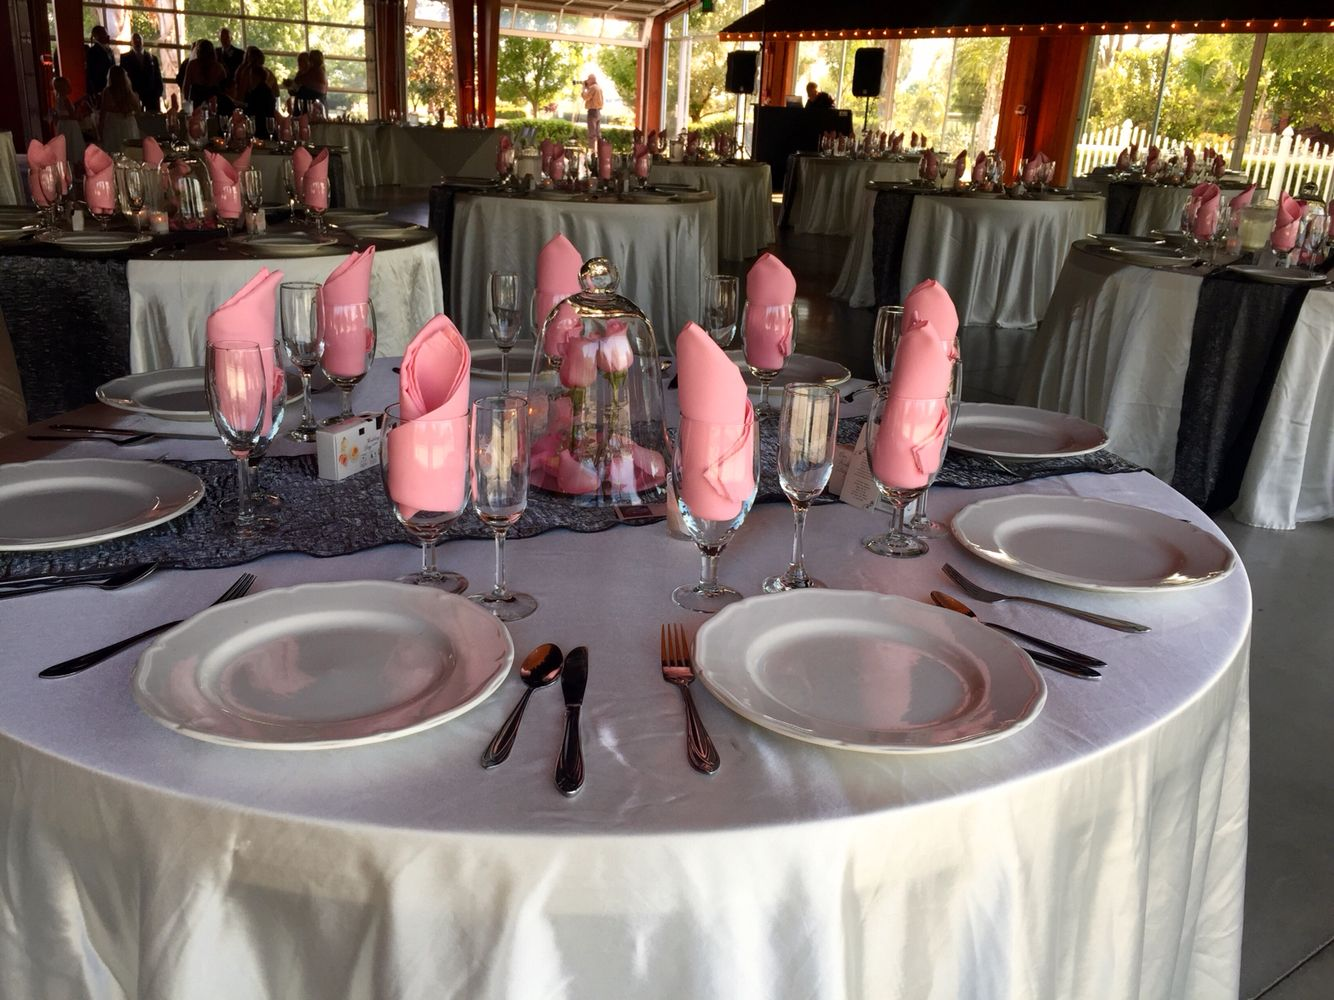 Ivory Table Cloth Grey Runner Pink Napkin Pink Napkins Grey Runner Table Cloth